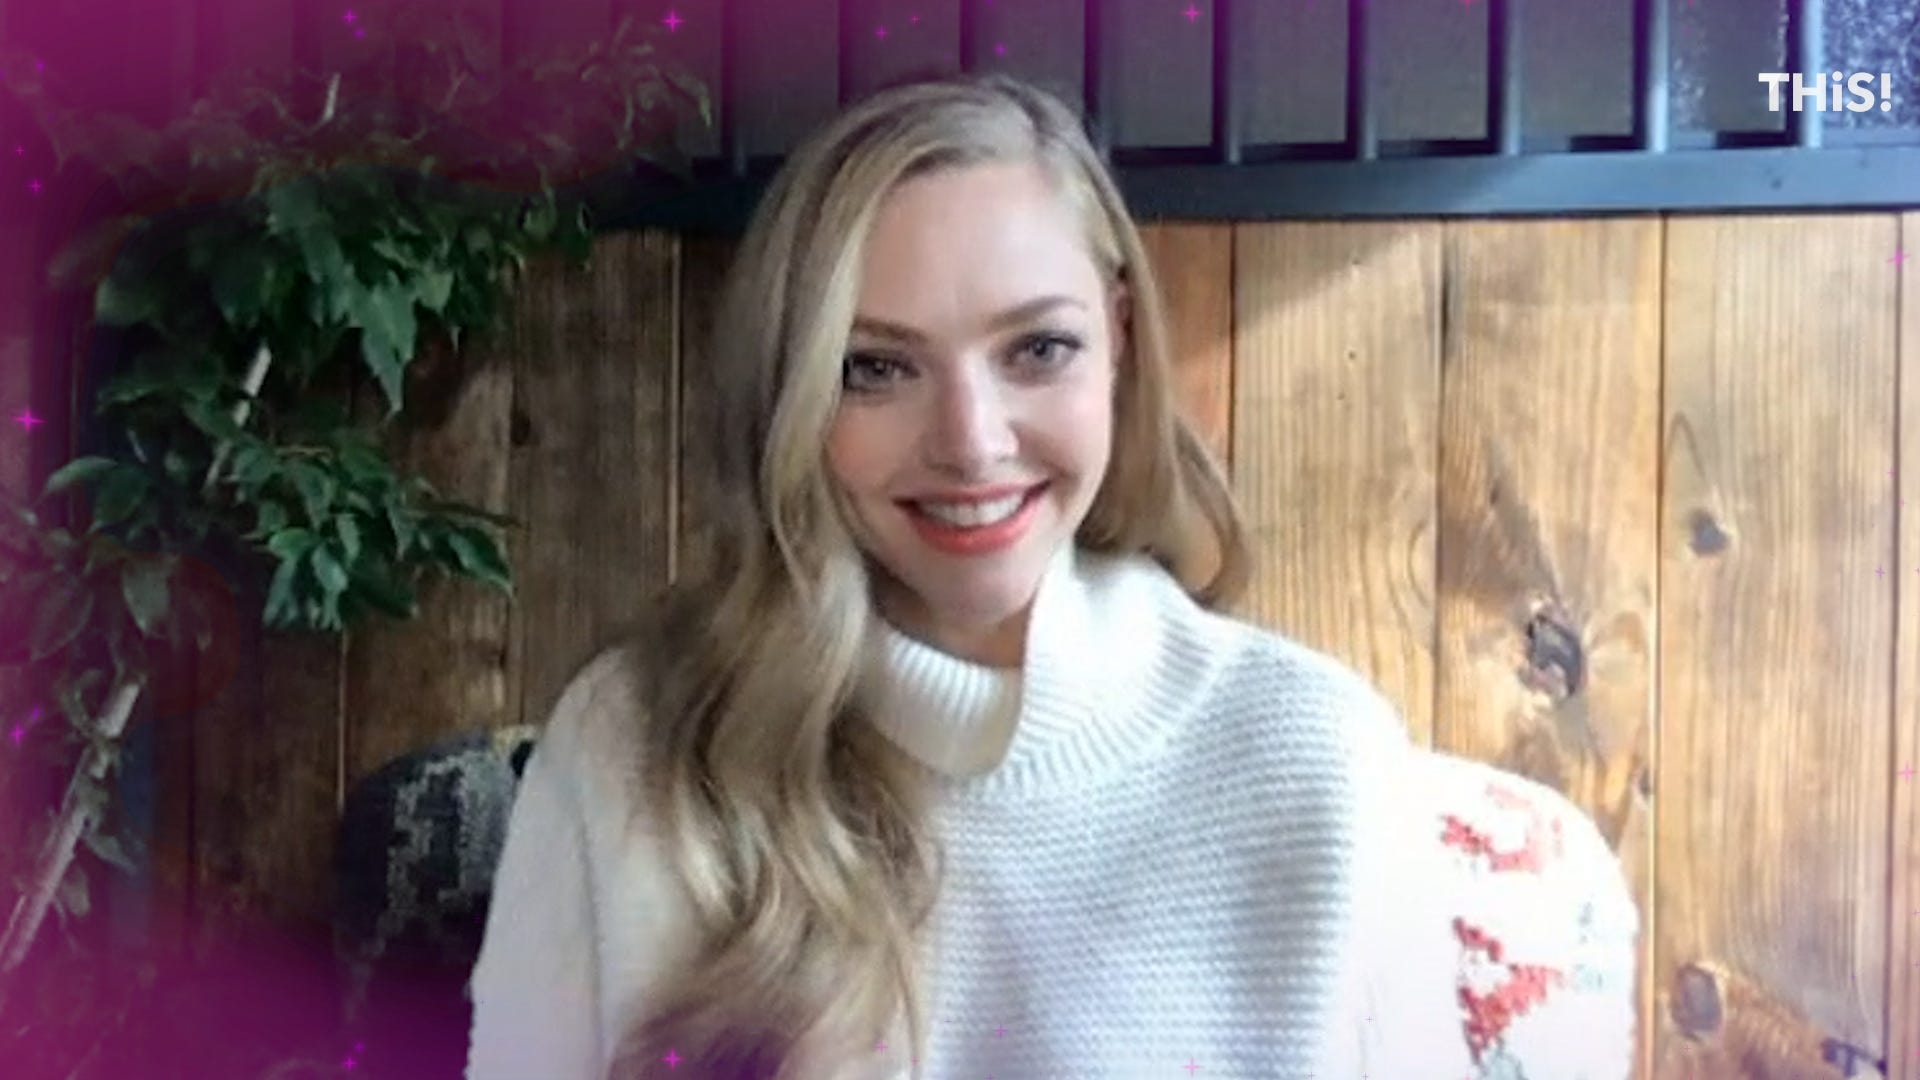 'I'm a very lucky lady': Amanda Seyfried talks about new film 'Mank' and life on a farm